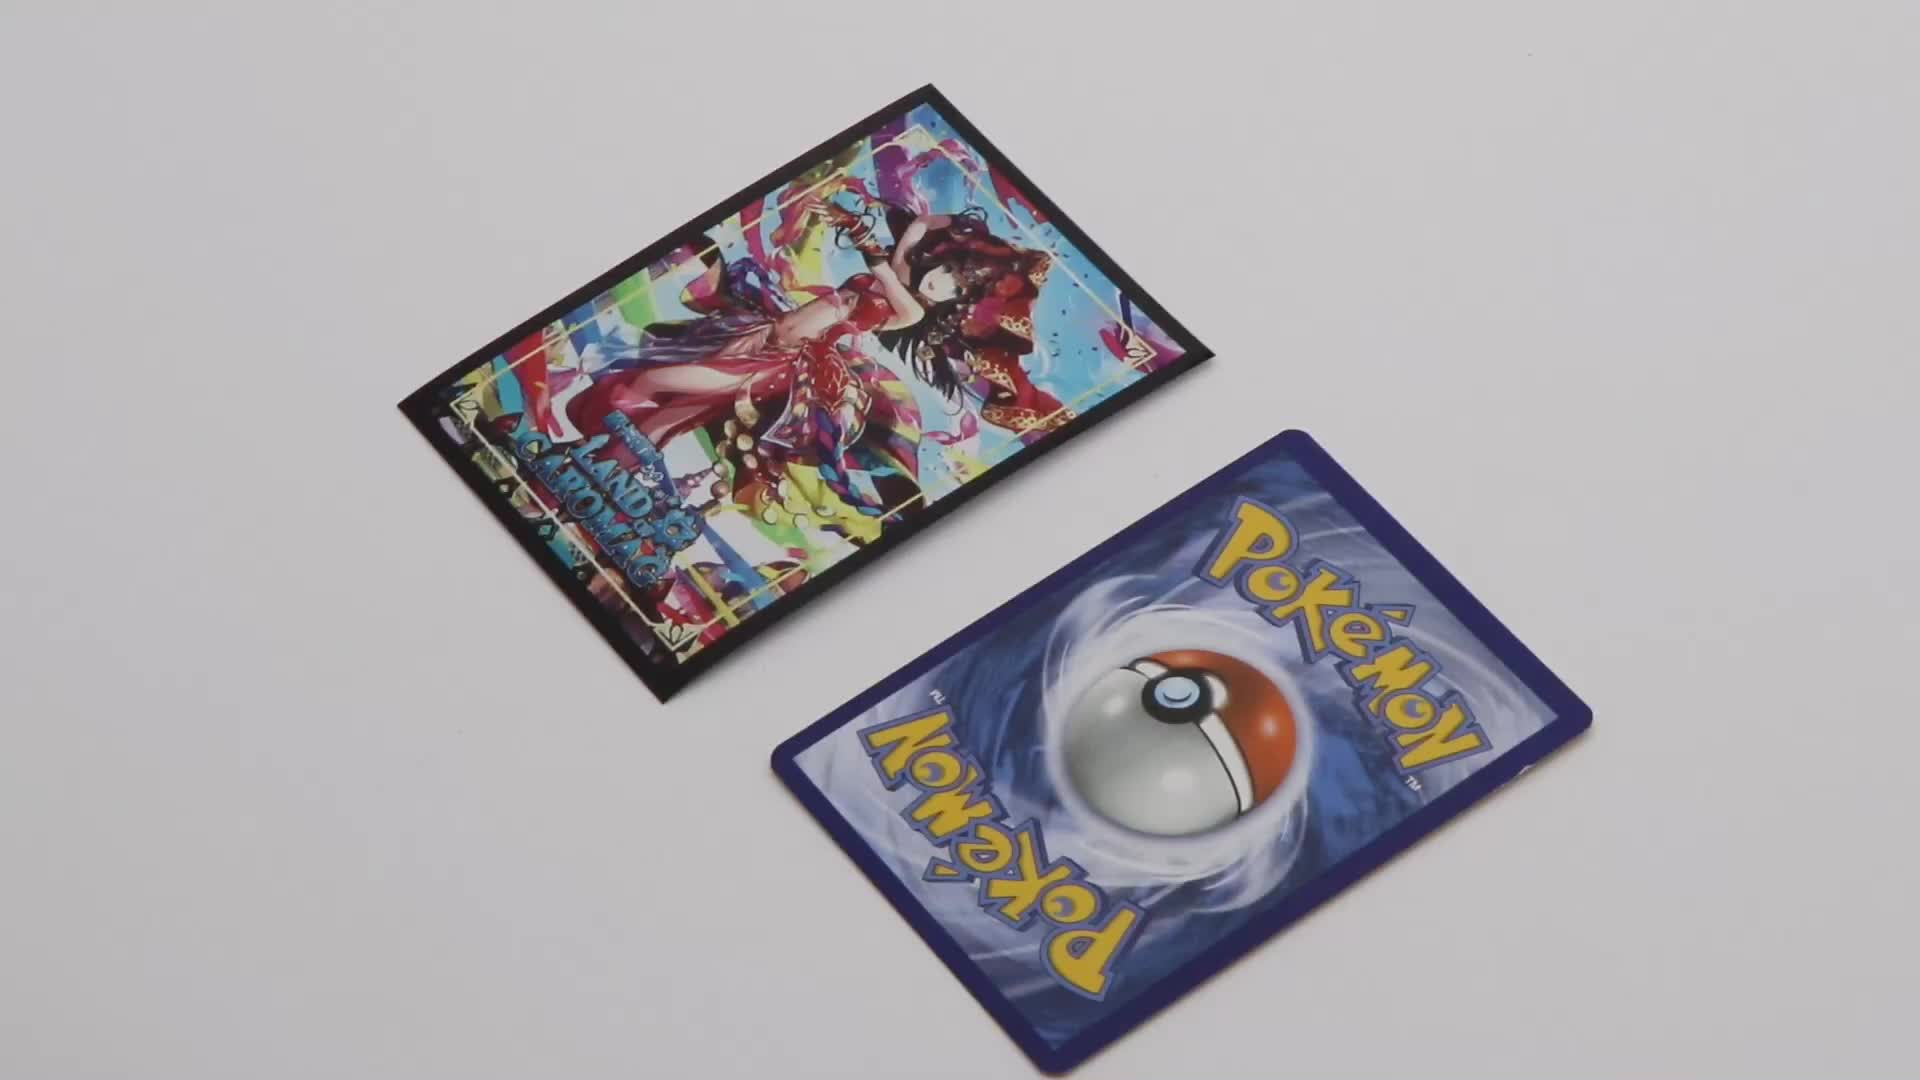 ffg fow pokemon vanguard vg bushiroad plastic sleeves for card dragon shields - Plastic Sleeves For Cards